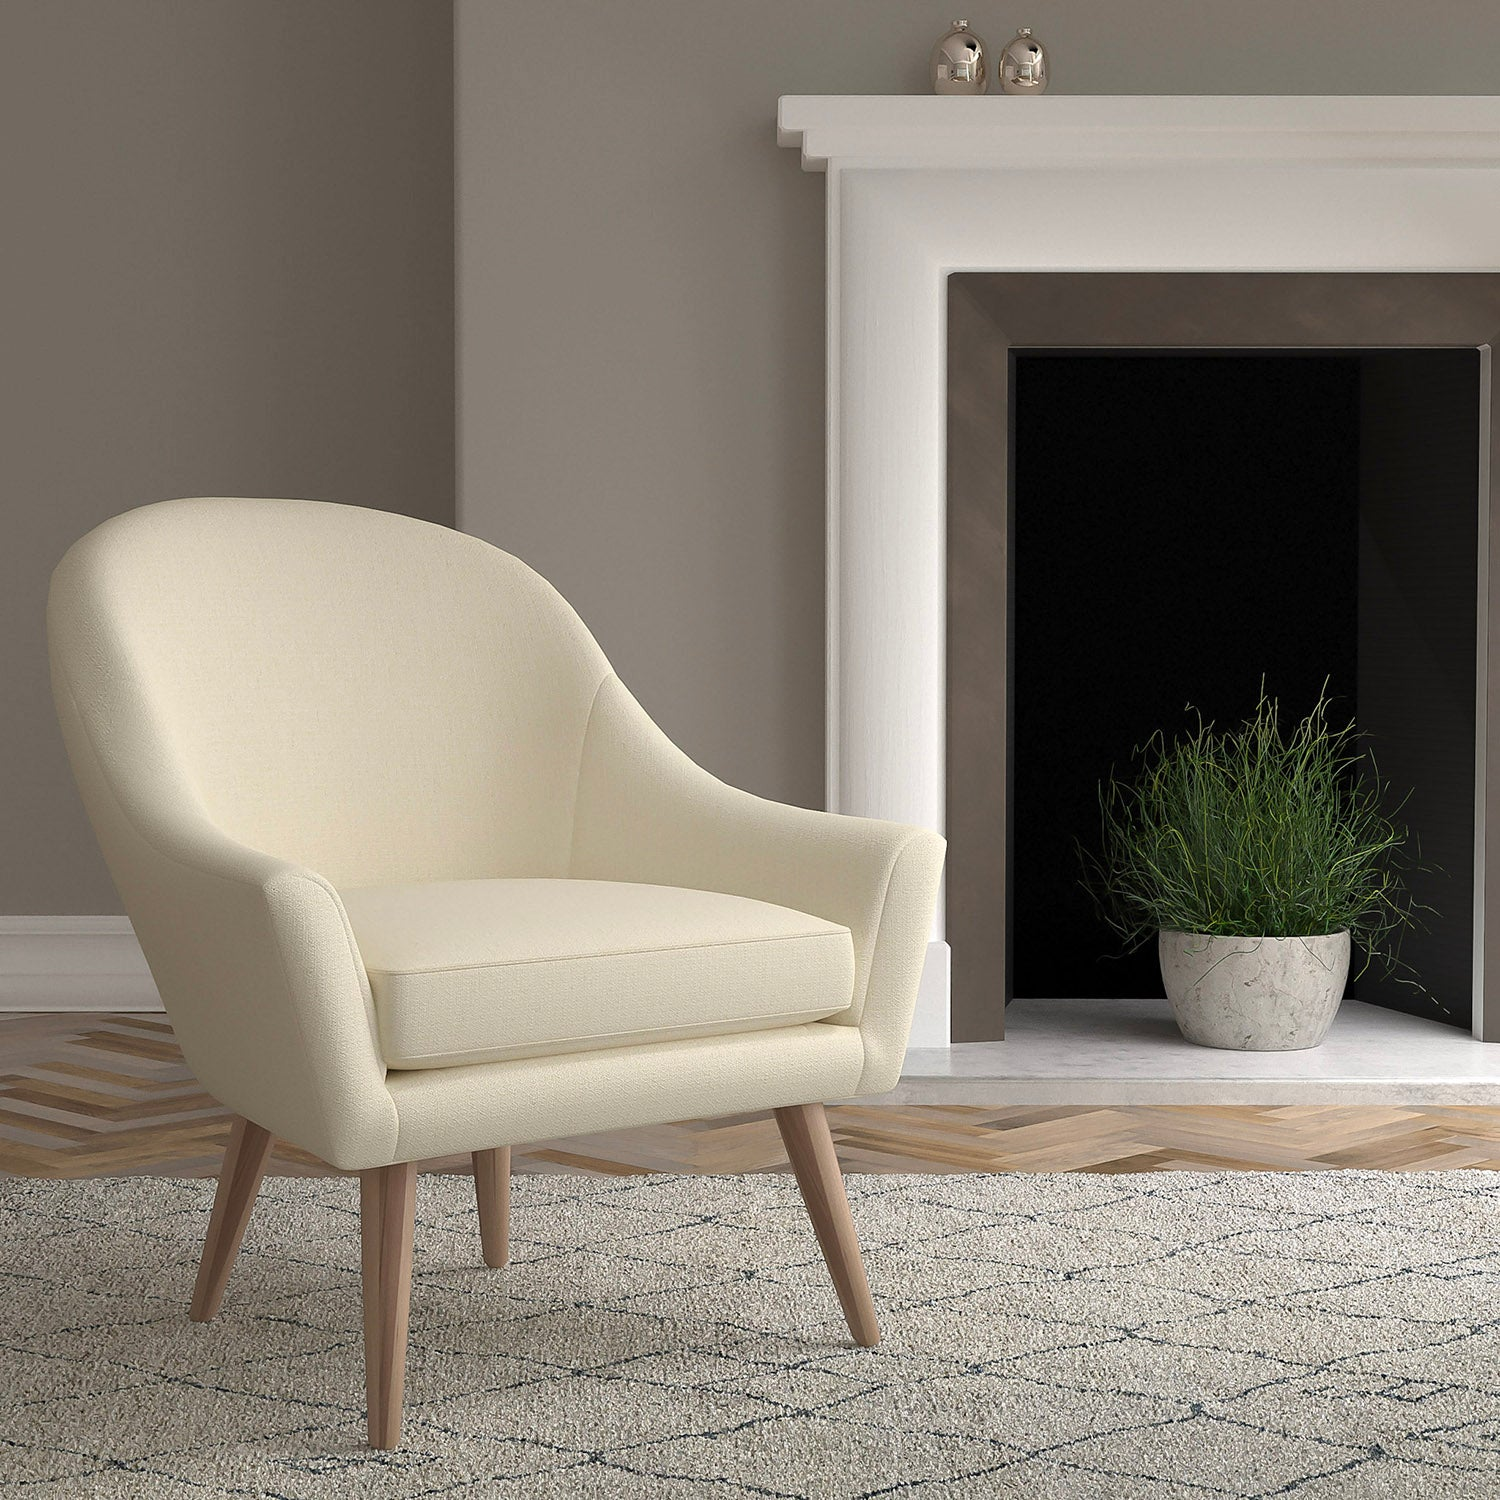 Chair in a light neutral upholstery fabric with a small diamond design and a stain resistant finish